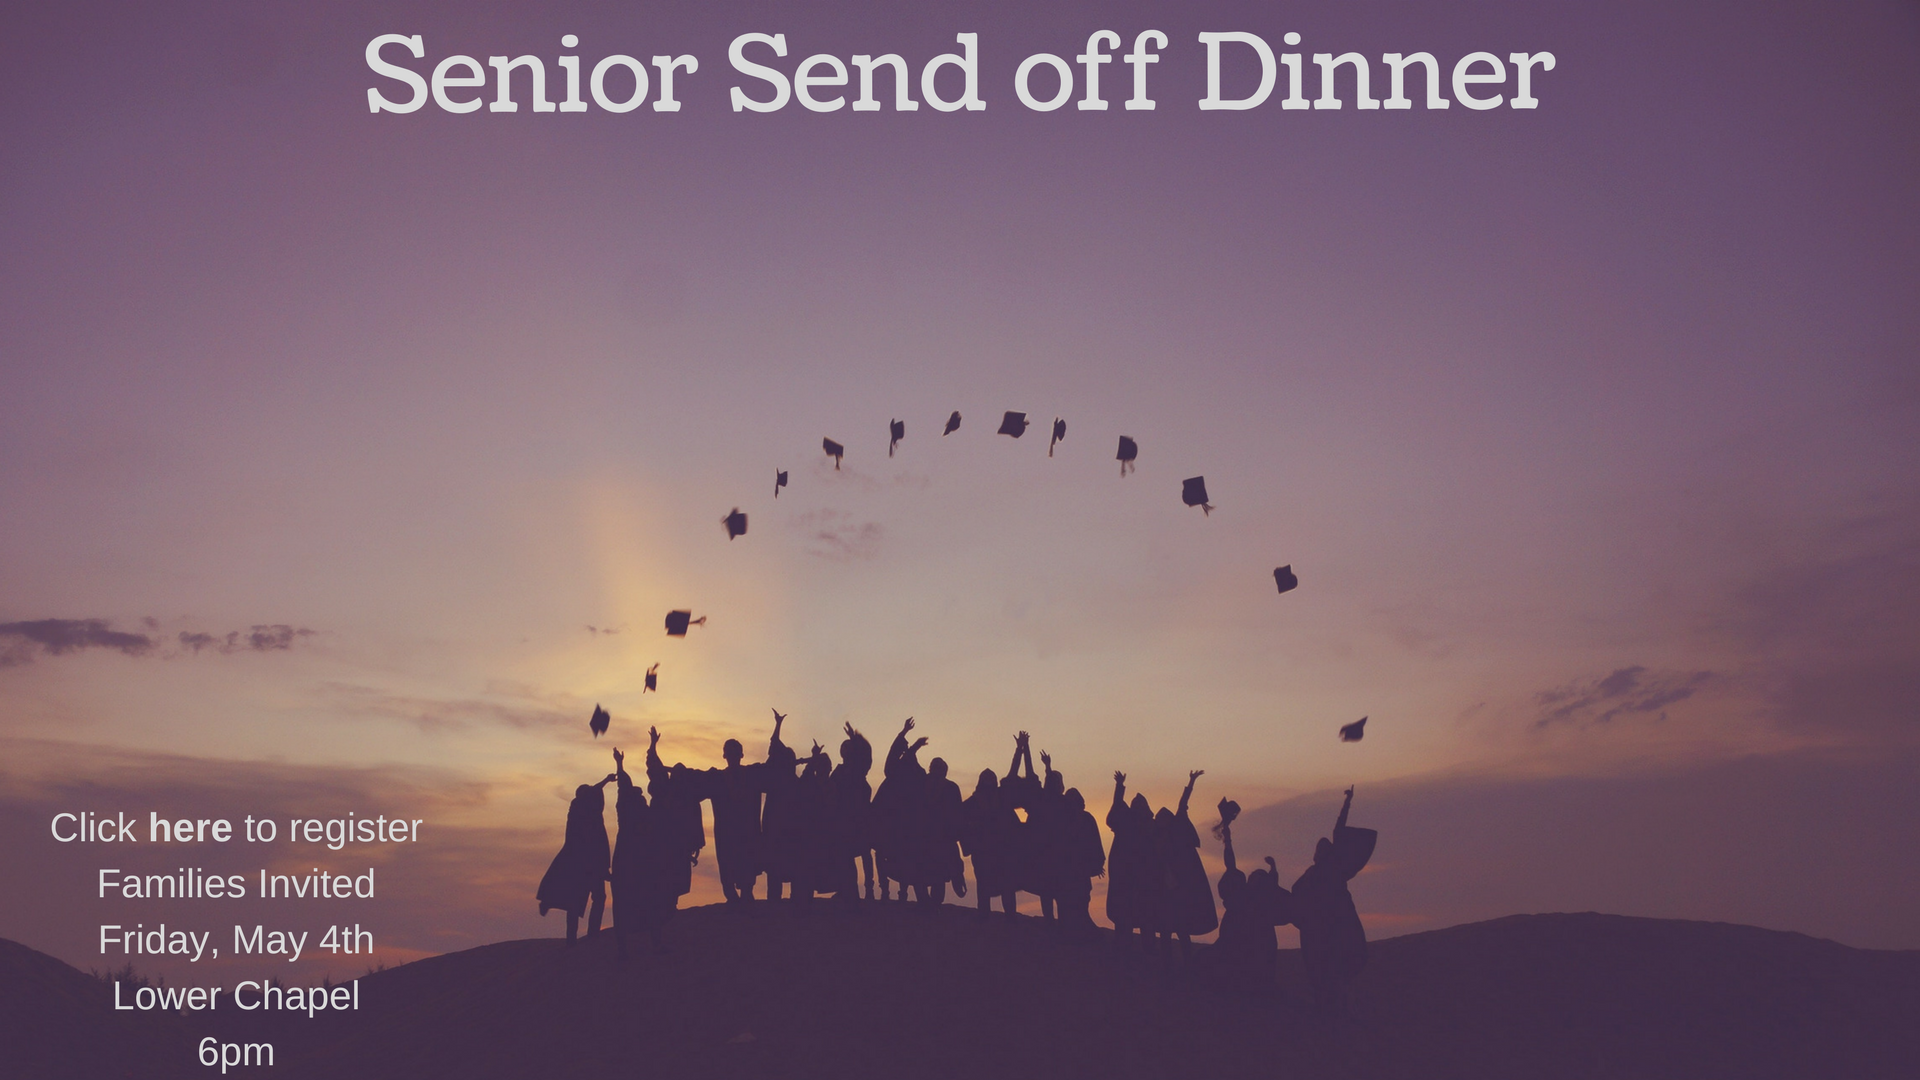 Senior Send off Dinner